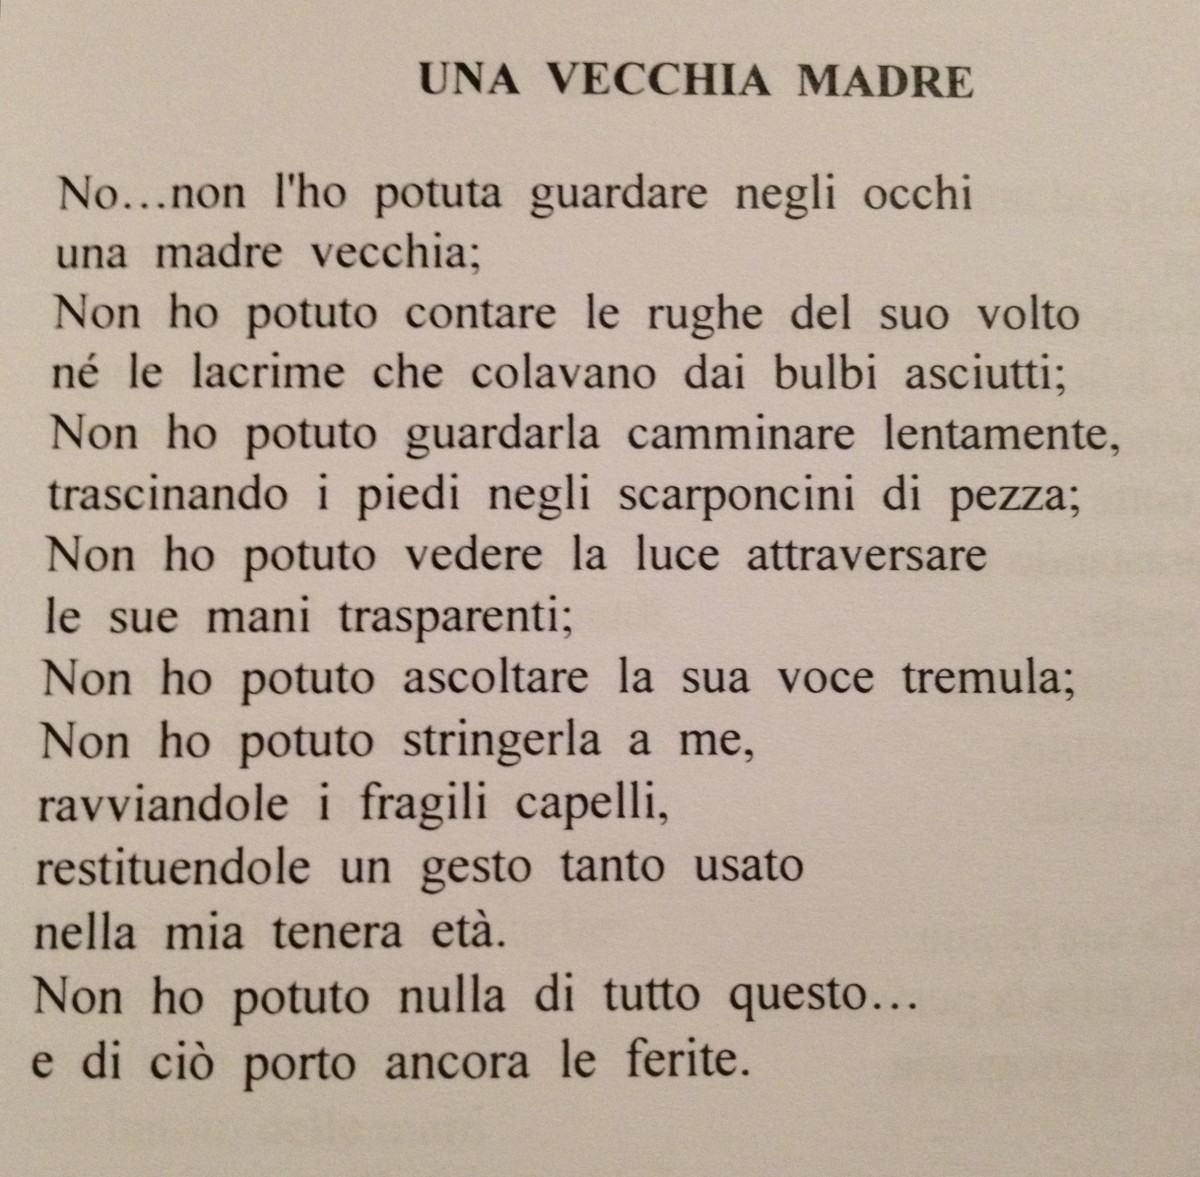 Celebrating Mother's Day with an Italian Poem. Click link for it's translation.